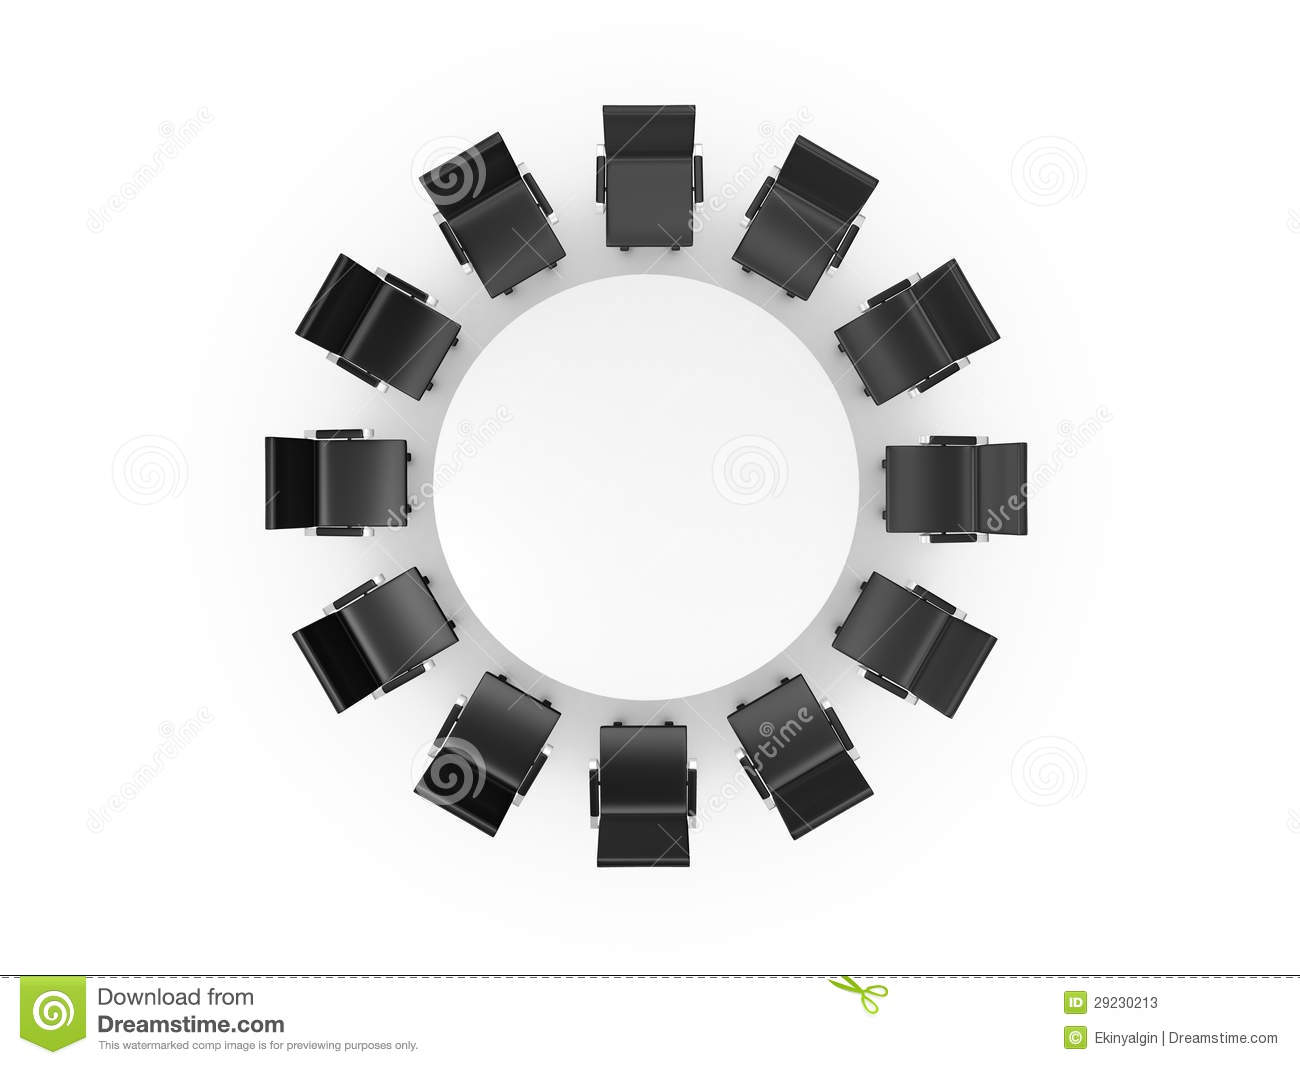 Table and chairs top view - Conference Table And Office Chairs Stock Photos